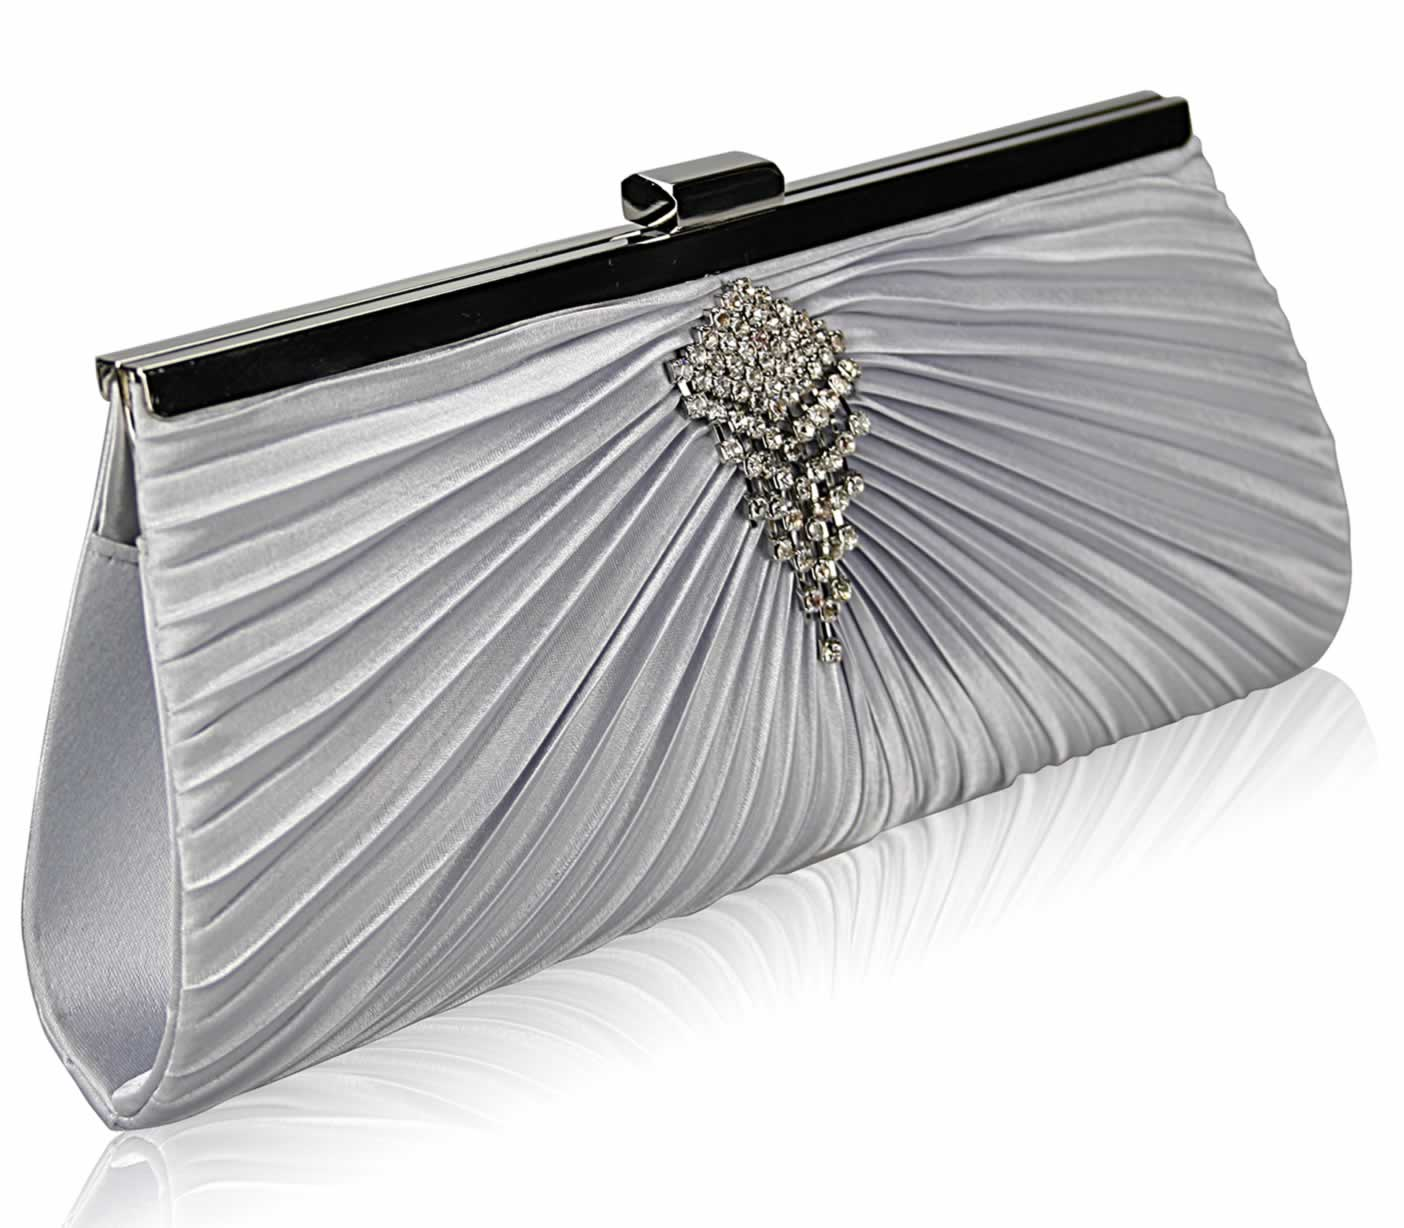 Silver Satin Clutch Bag With Crystal Decoration